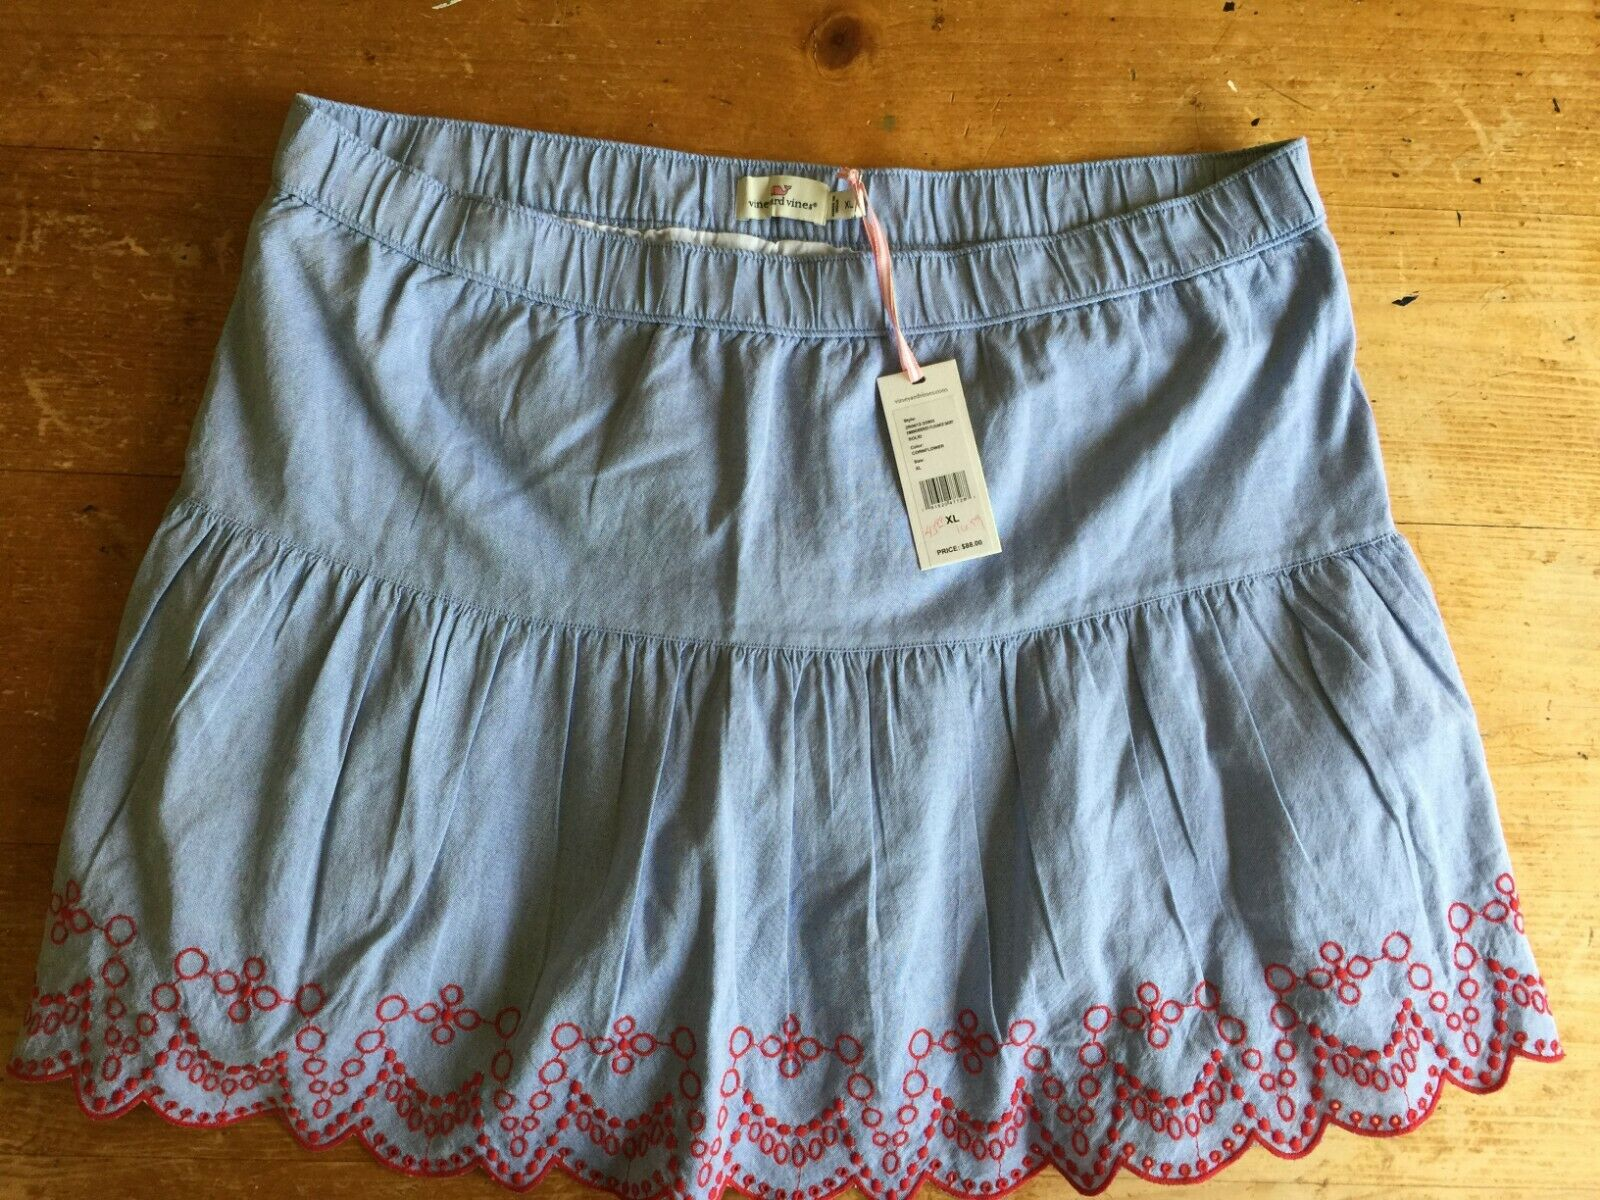 NWT Vineyard Vines Womens Embroider Pullon Cotton Flounce Skirt bluee Red XL B17